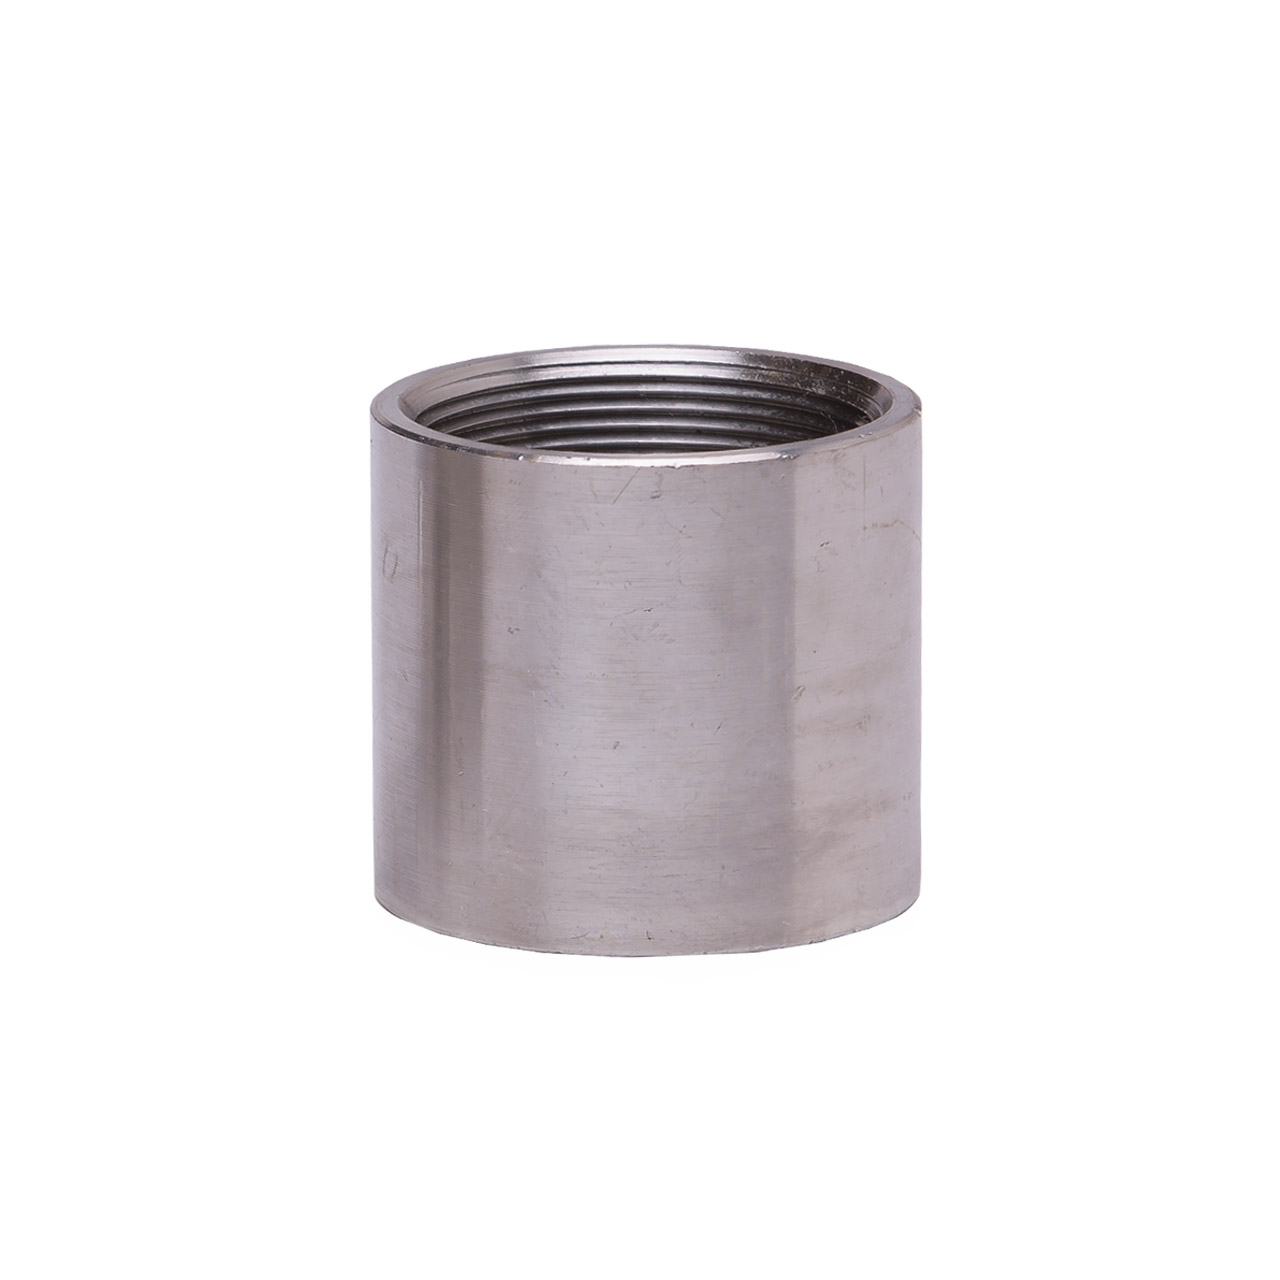 2 Inch Stainless Steel Coupling : Various fitting mfrs stainless steel merchant